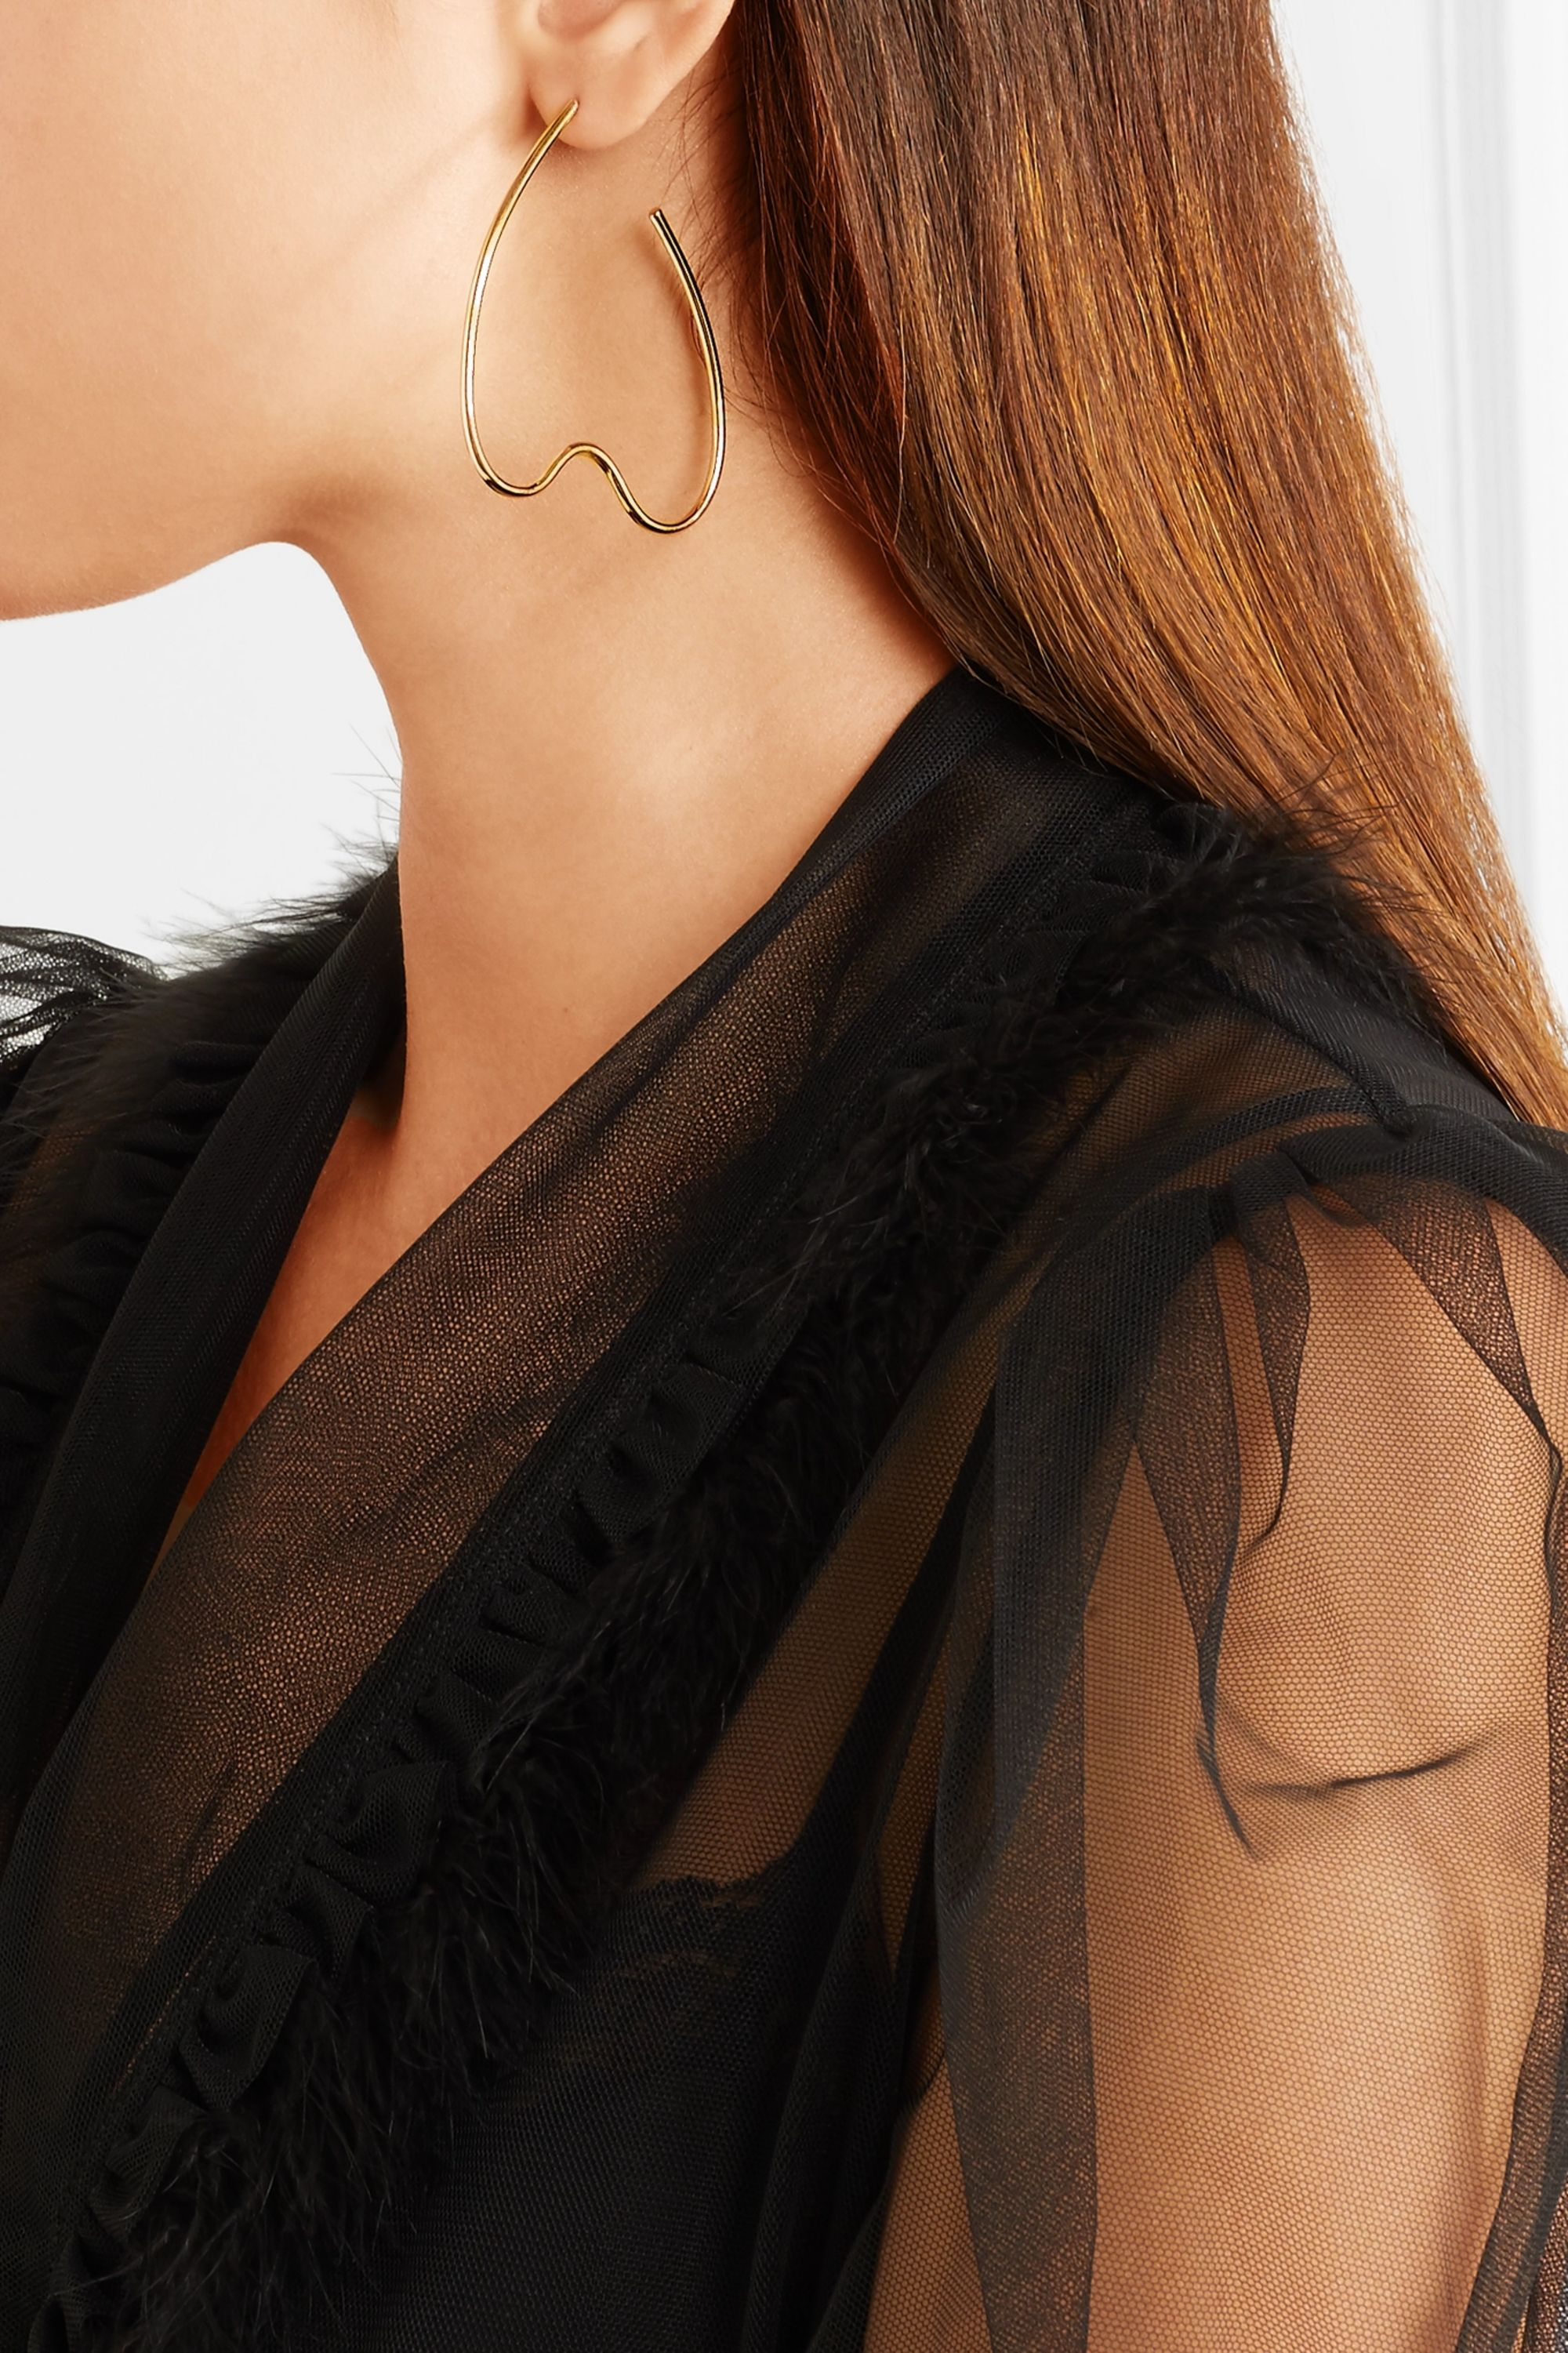 Simone Rocha Gold-plated earrings